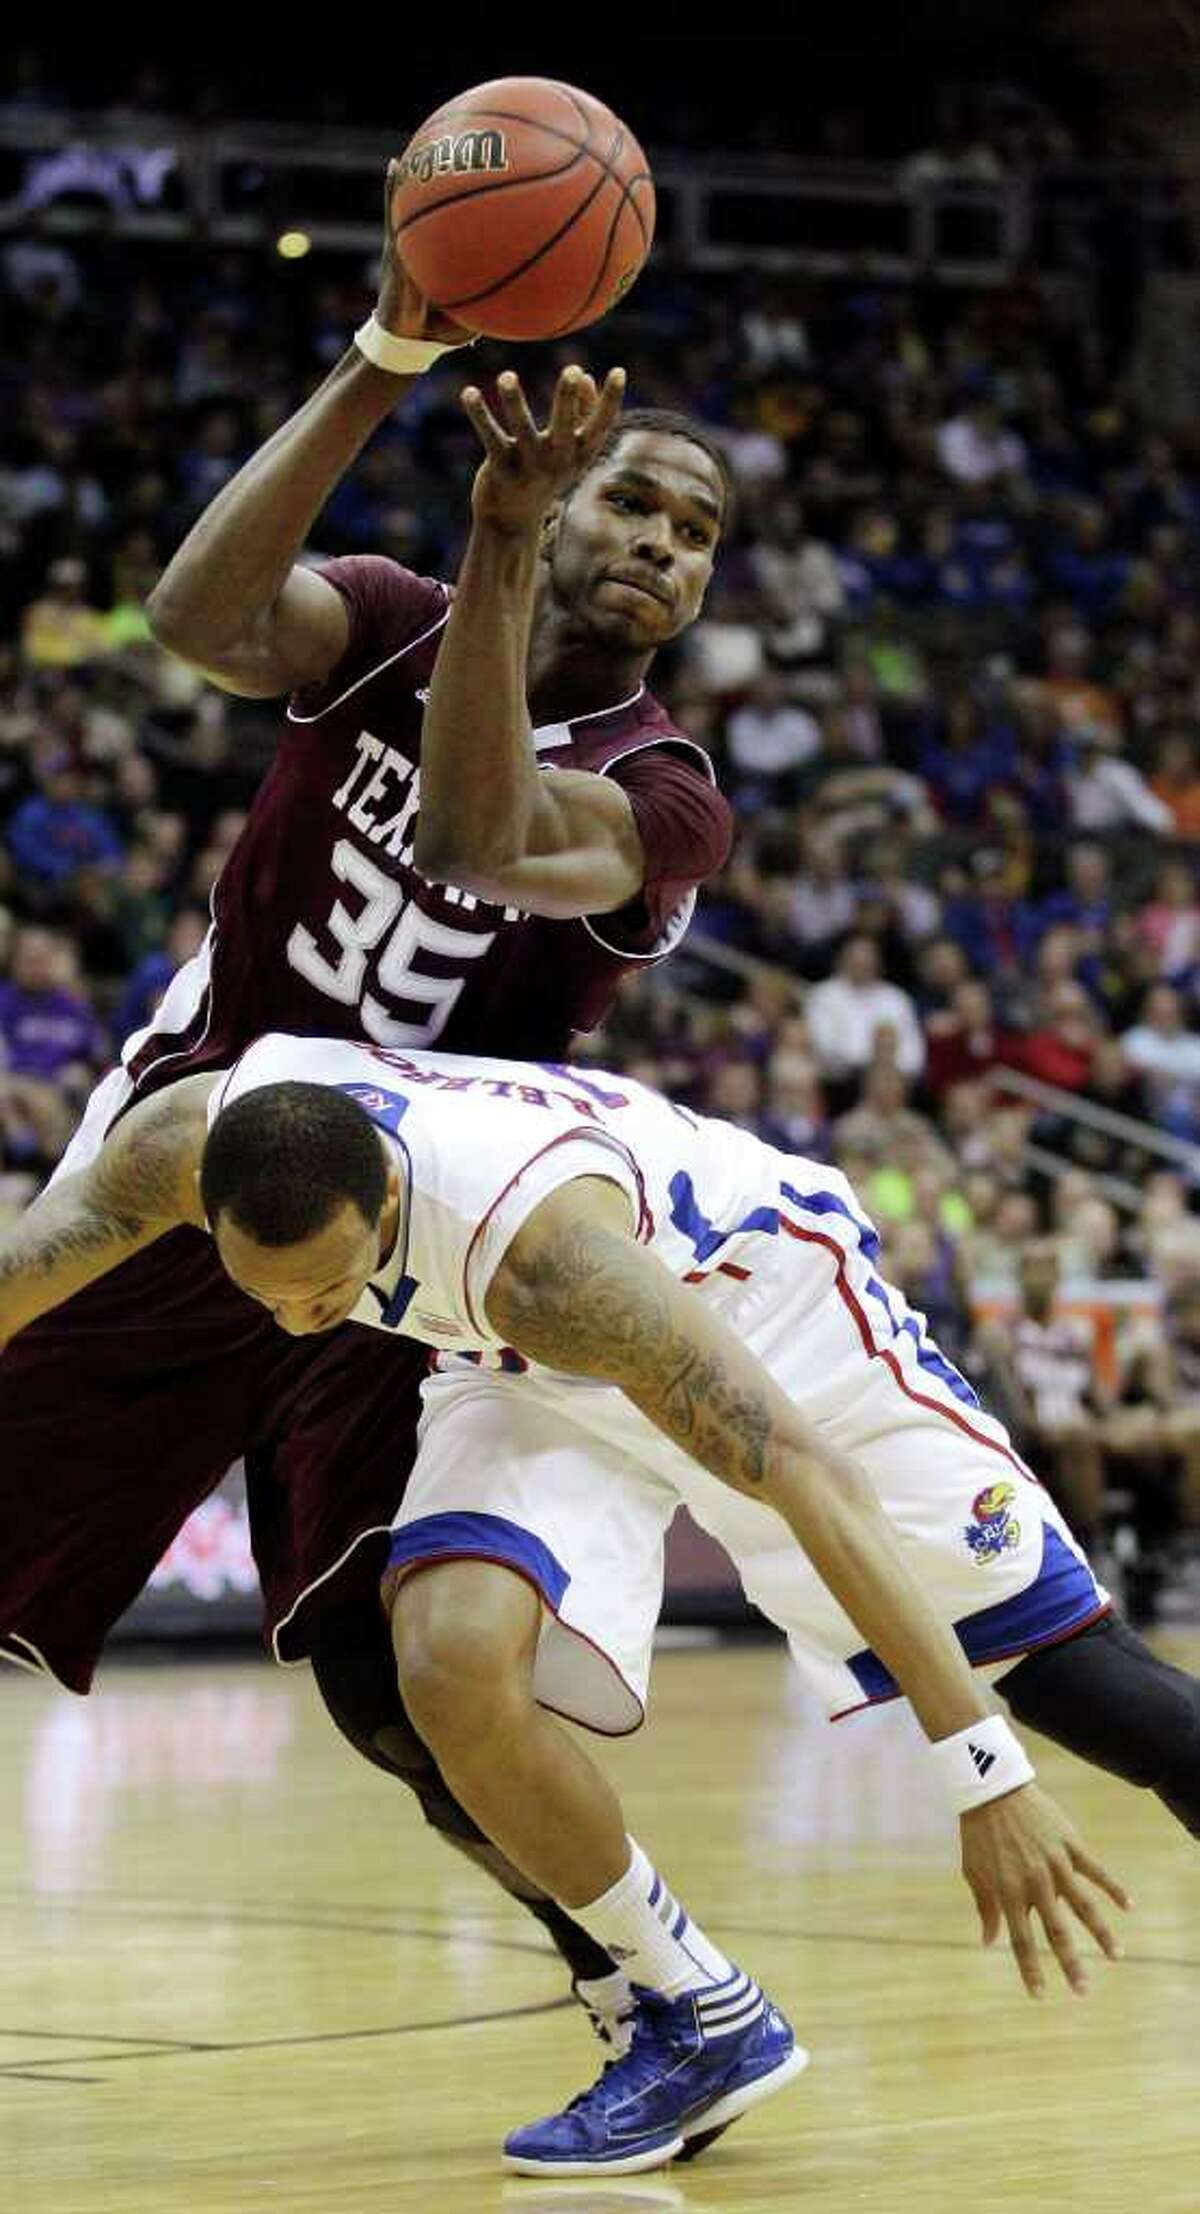 Texas A&M forward Ray Turner (35) passes the ball over Kansas guard Travis Releford (24) during the first half of an NCAA college basketball game in the Big 12 Conference tournament, Thursday, March 8, 2012, in Kansas City, Mo. (AP Photo/Charlie Riedel)